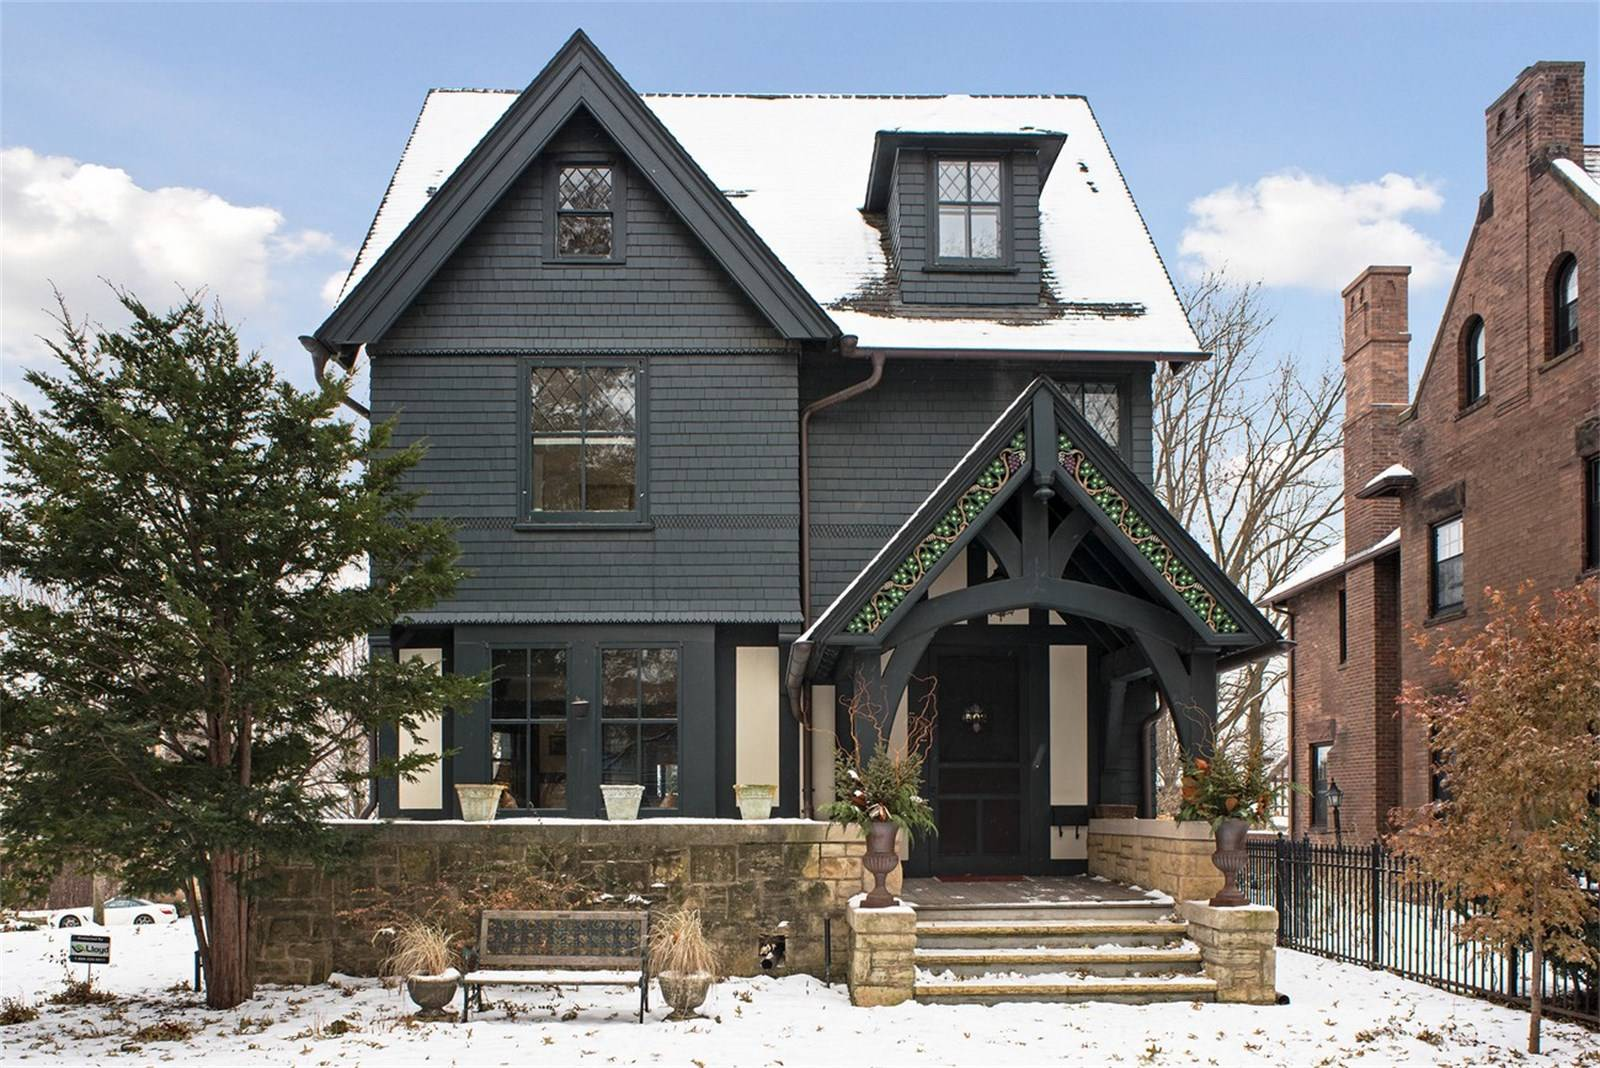 Dark blue-painted wood-frame house with covered stone porch dusted with snow.